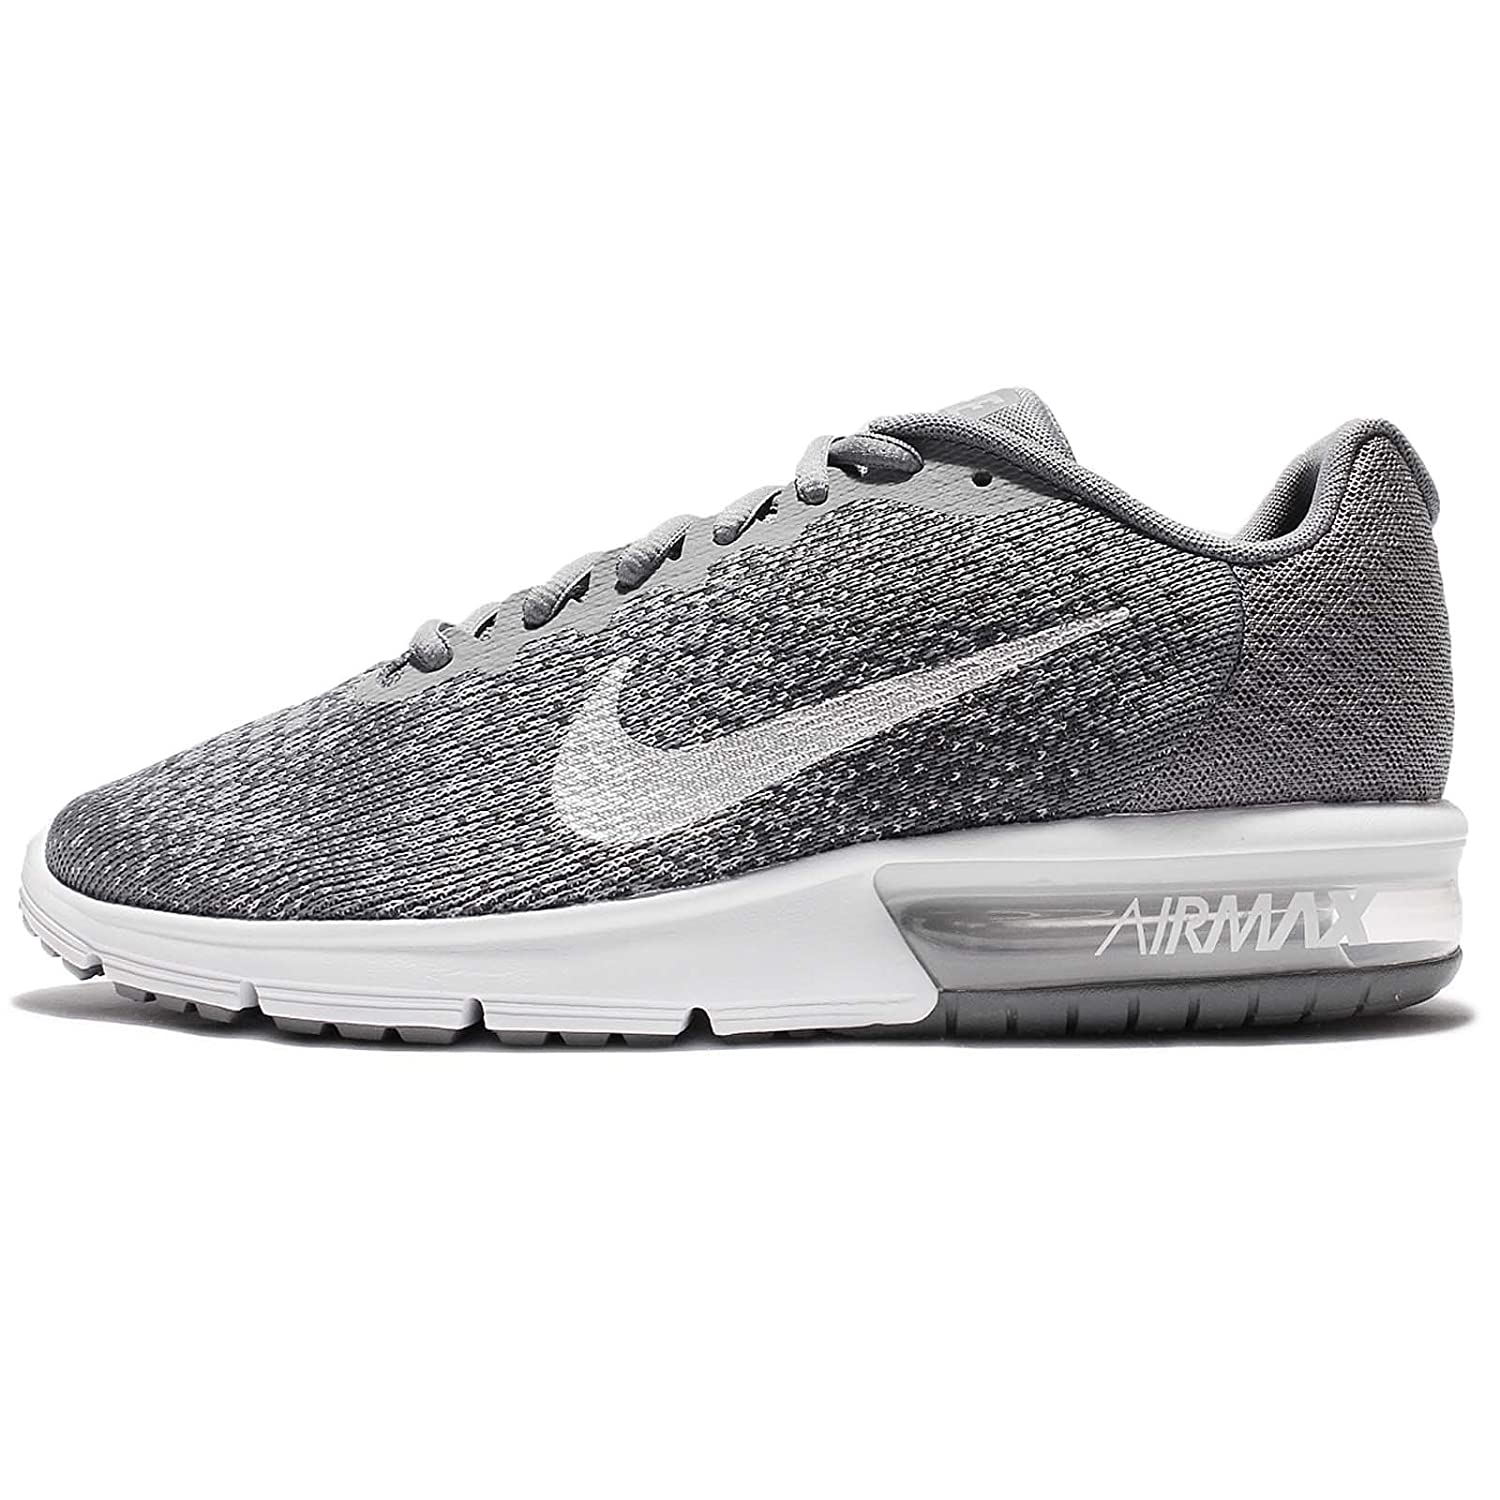 NIKE Men's Running Air Max Sequent 2 Running Men's Shoe B071HN8311 9.5 D(M) US|Cool Grey Metallic Silver 009 55656d